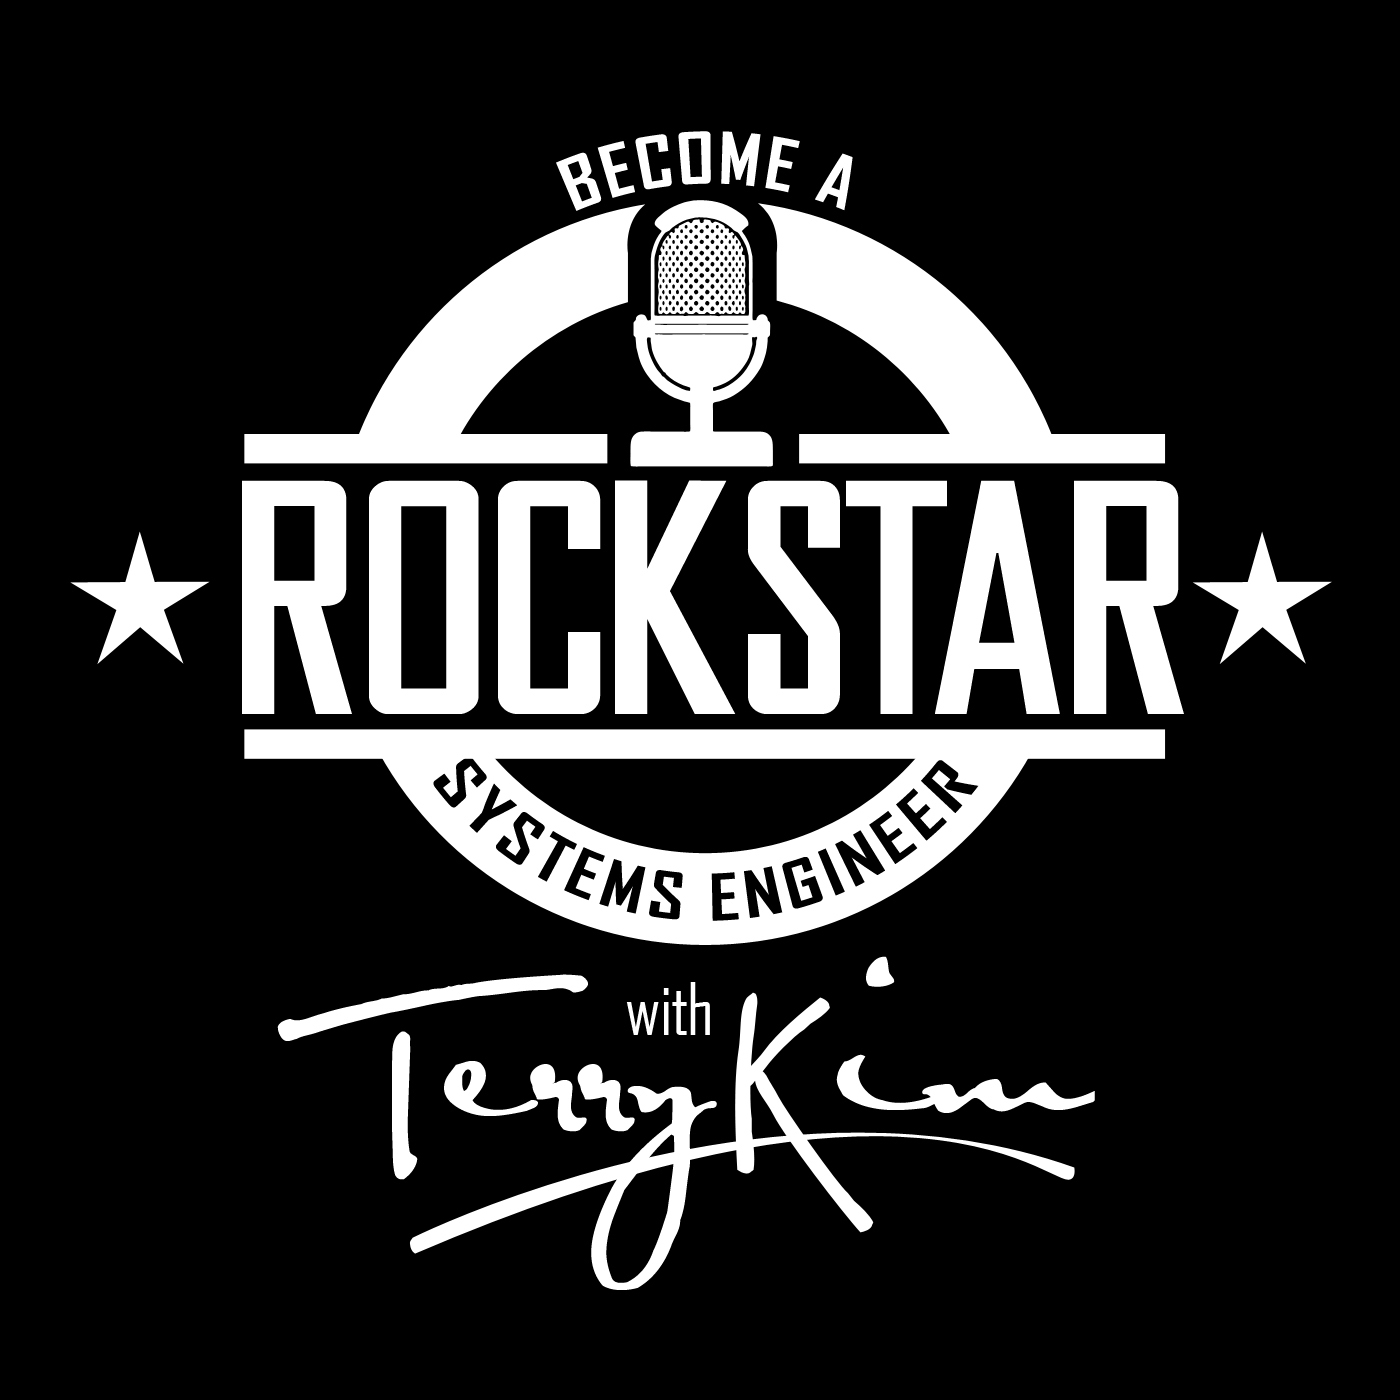 Become a Rockstar Systems Engineer with Terry Kim show art